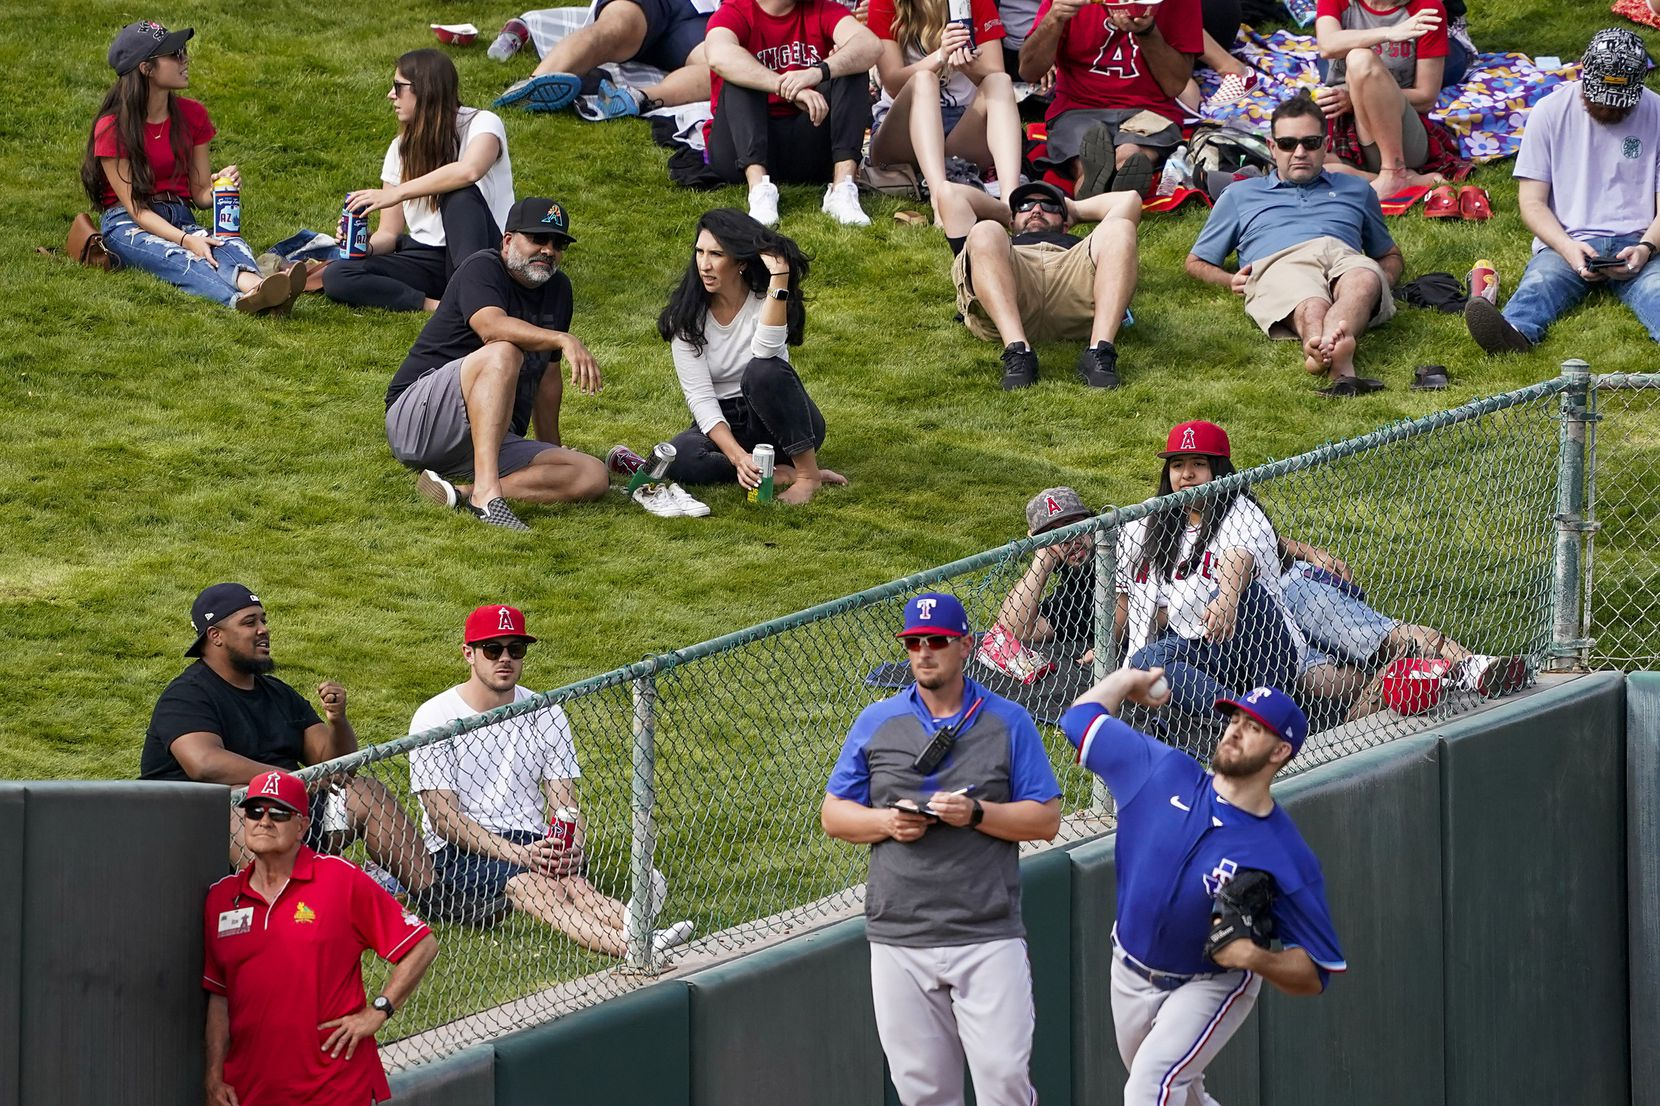 Fans on the outfield berm watch Texas Rangers pitcher Lake Lemoine warm up in the  bullpen during the sixth inning of a spring training game at Tempe Diablo Stadium on Friday, Feb. 28, 2020, in Tempe, Ariz.